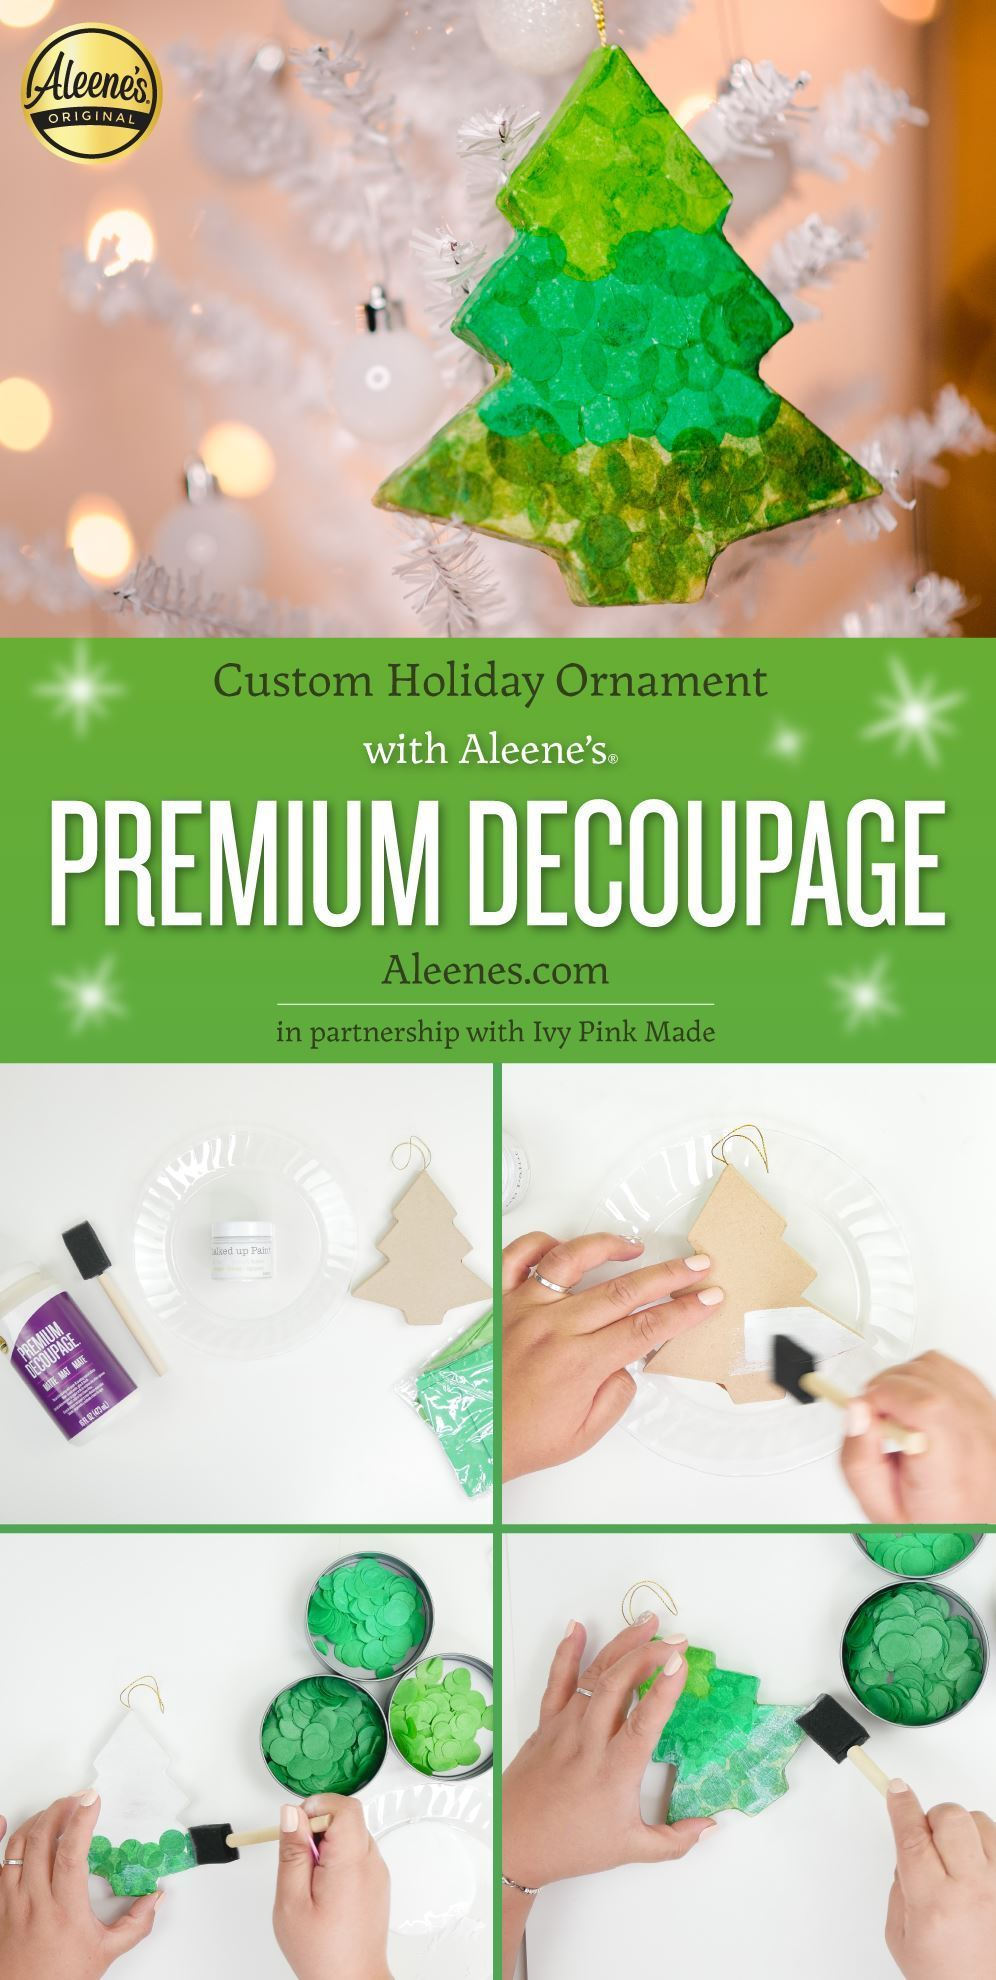 Custom Holiday Ornament with Decopauge